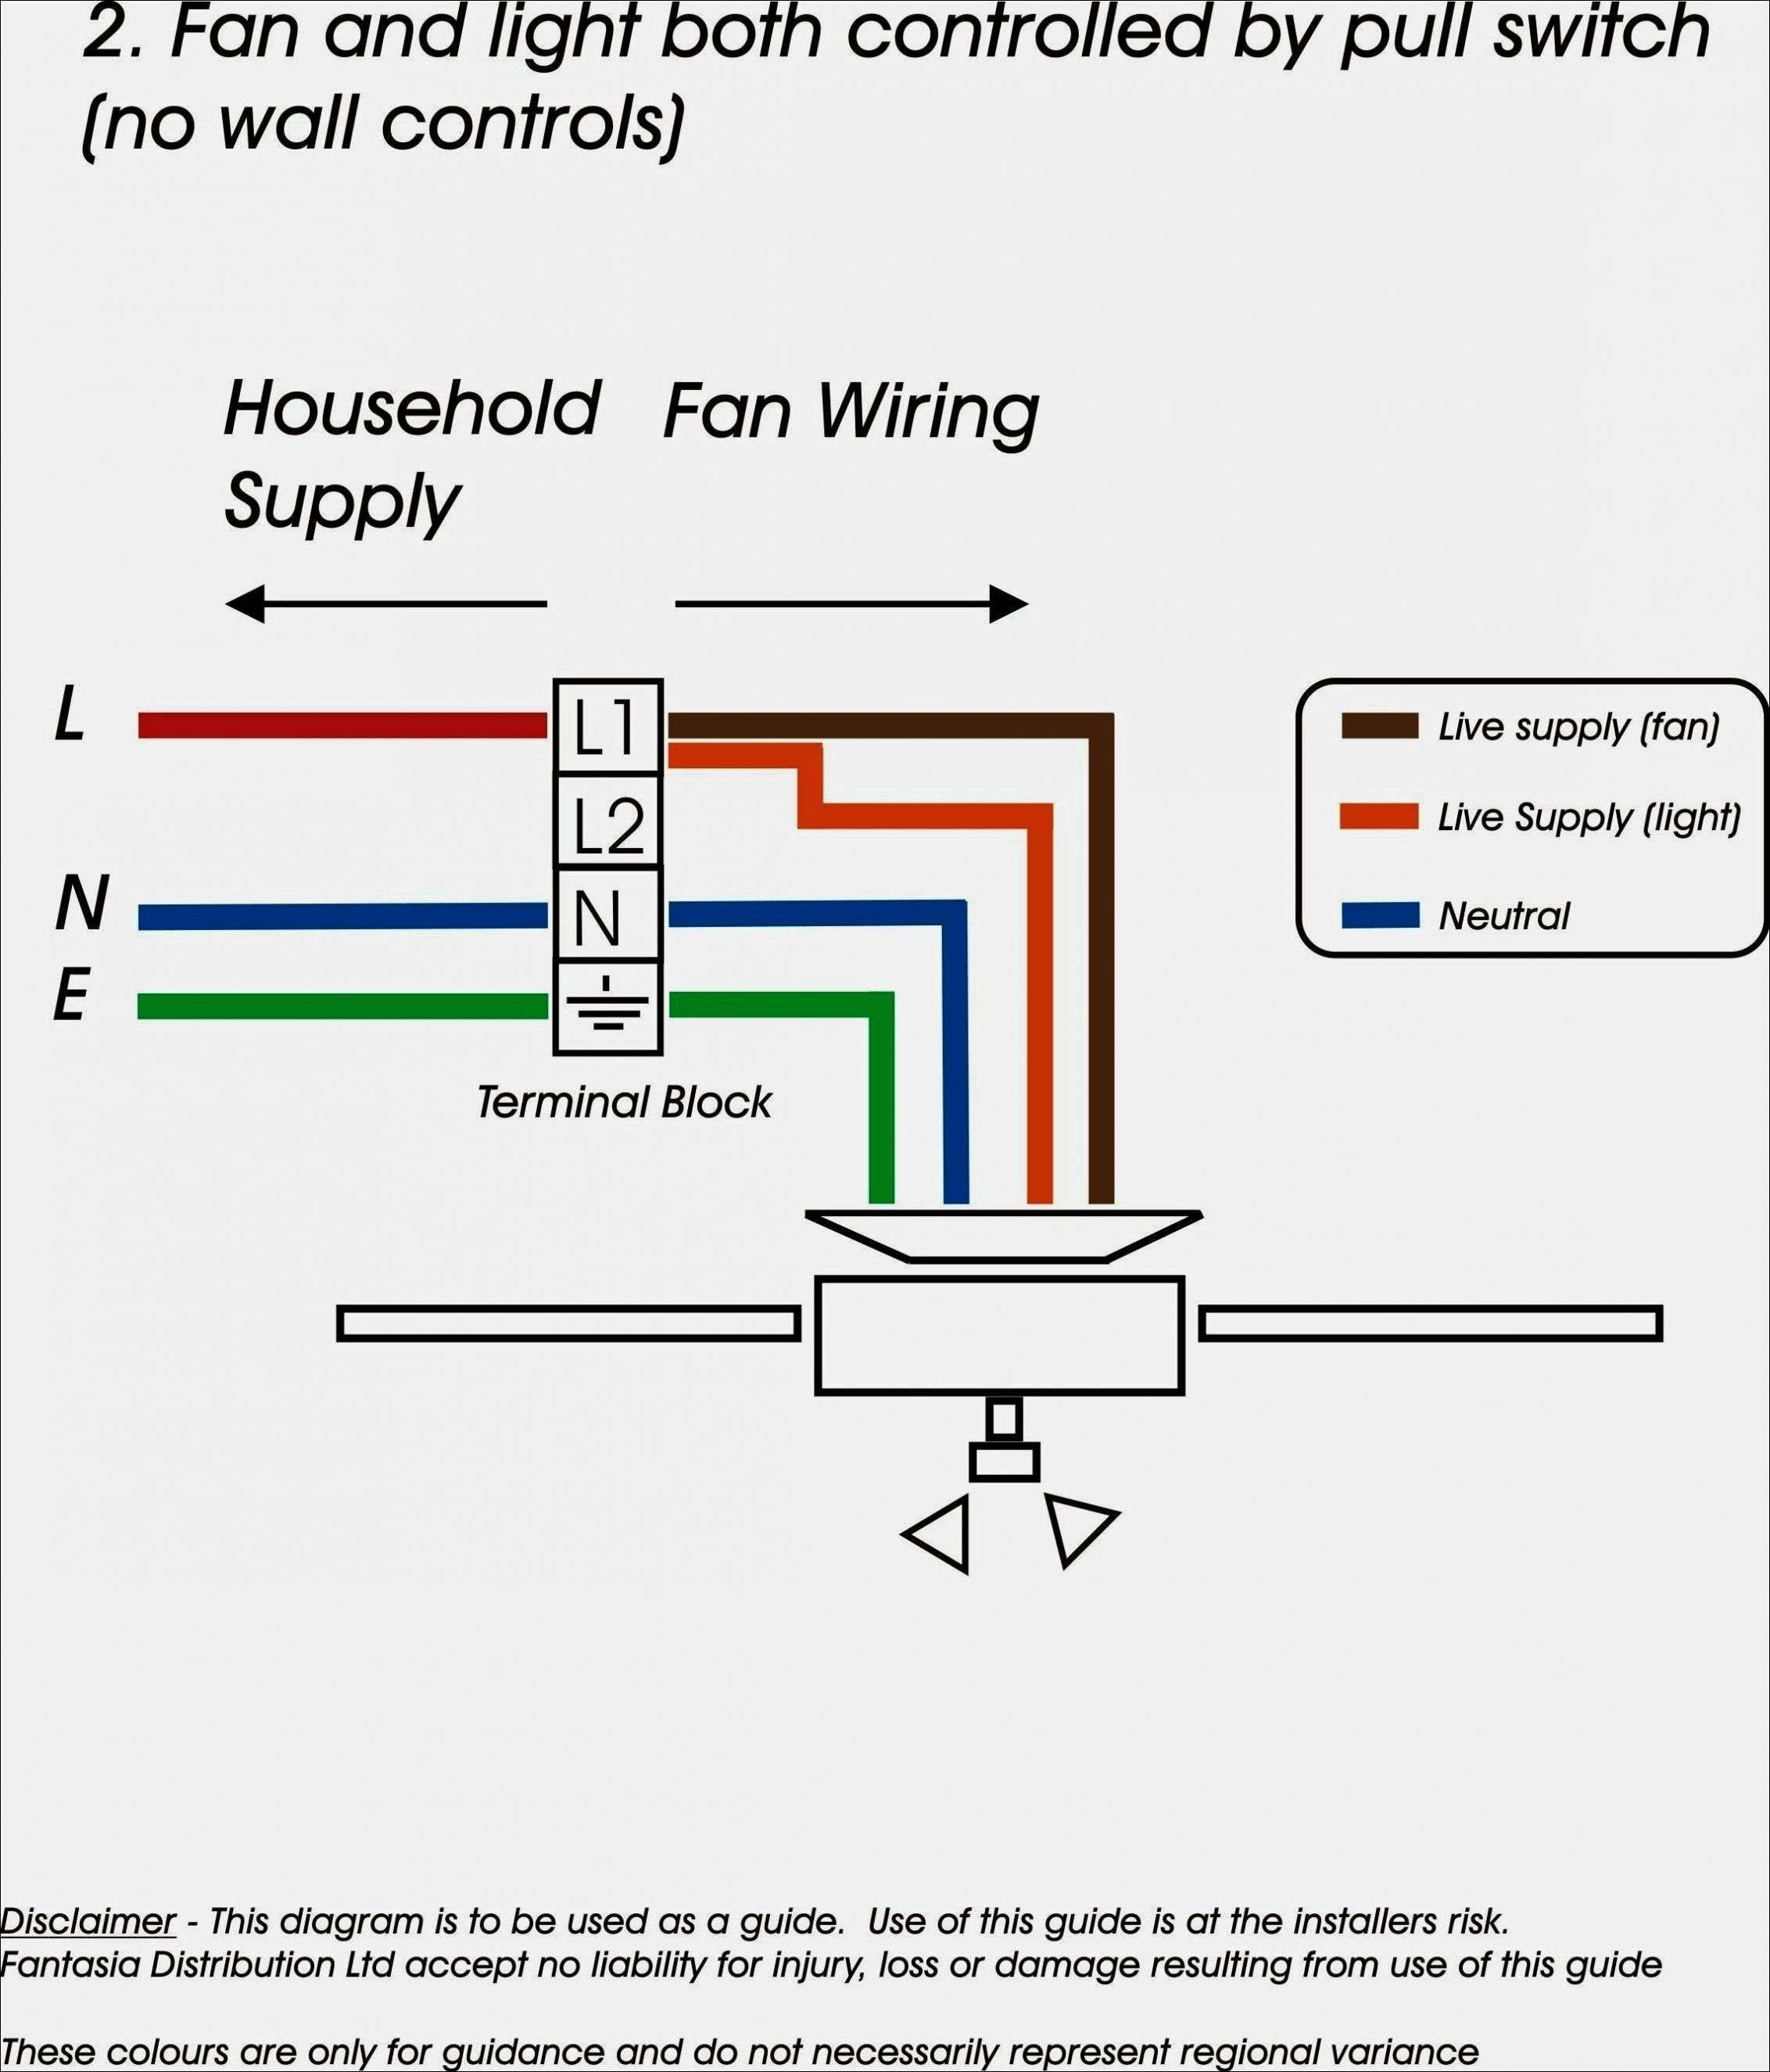 Wiring Diagram Bathroom Lovely Wiring Diagram Bathroom Bathroom Fan Light Wiring Diagram Mikulskila Ceiling Fan Switch Ceiling Fan Wiring Light Switch Wiring